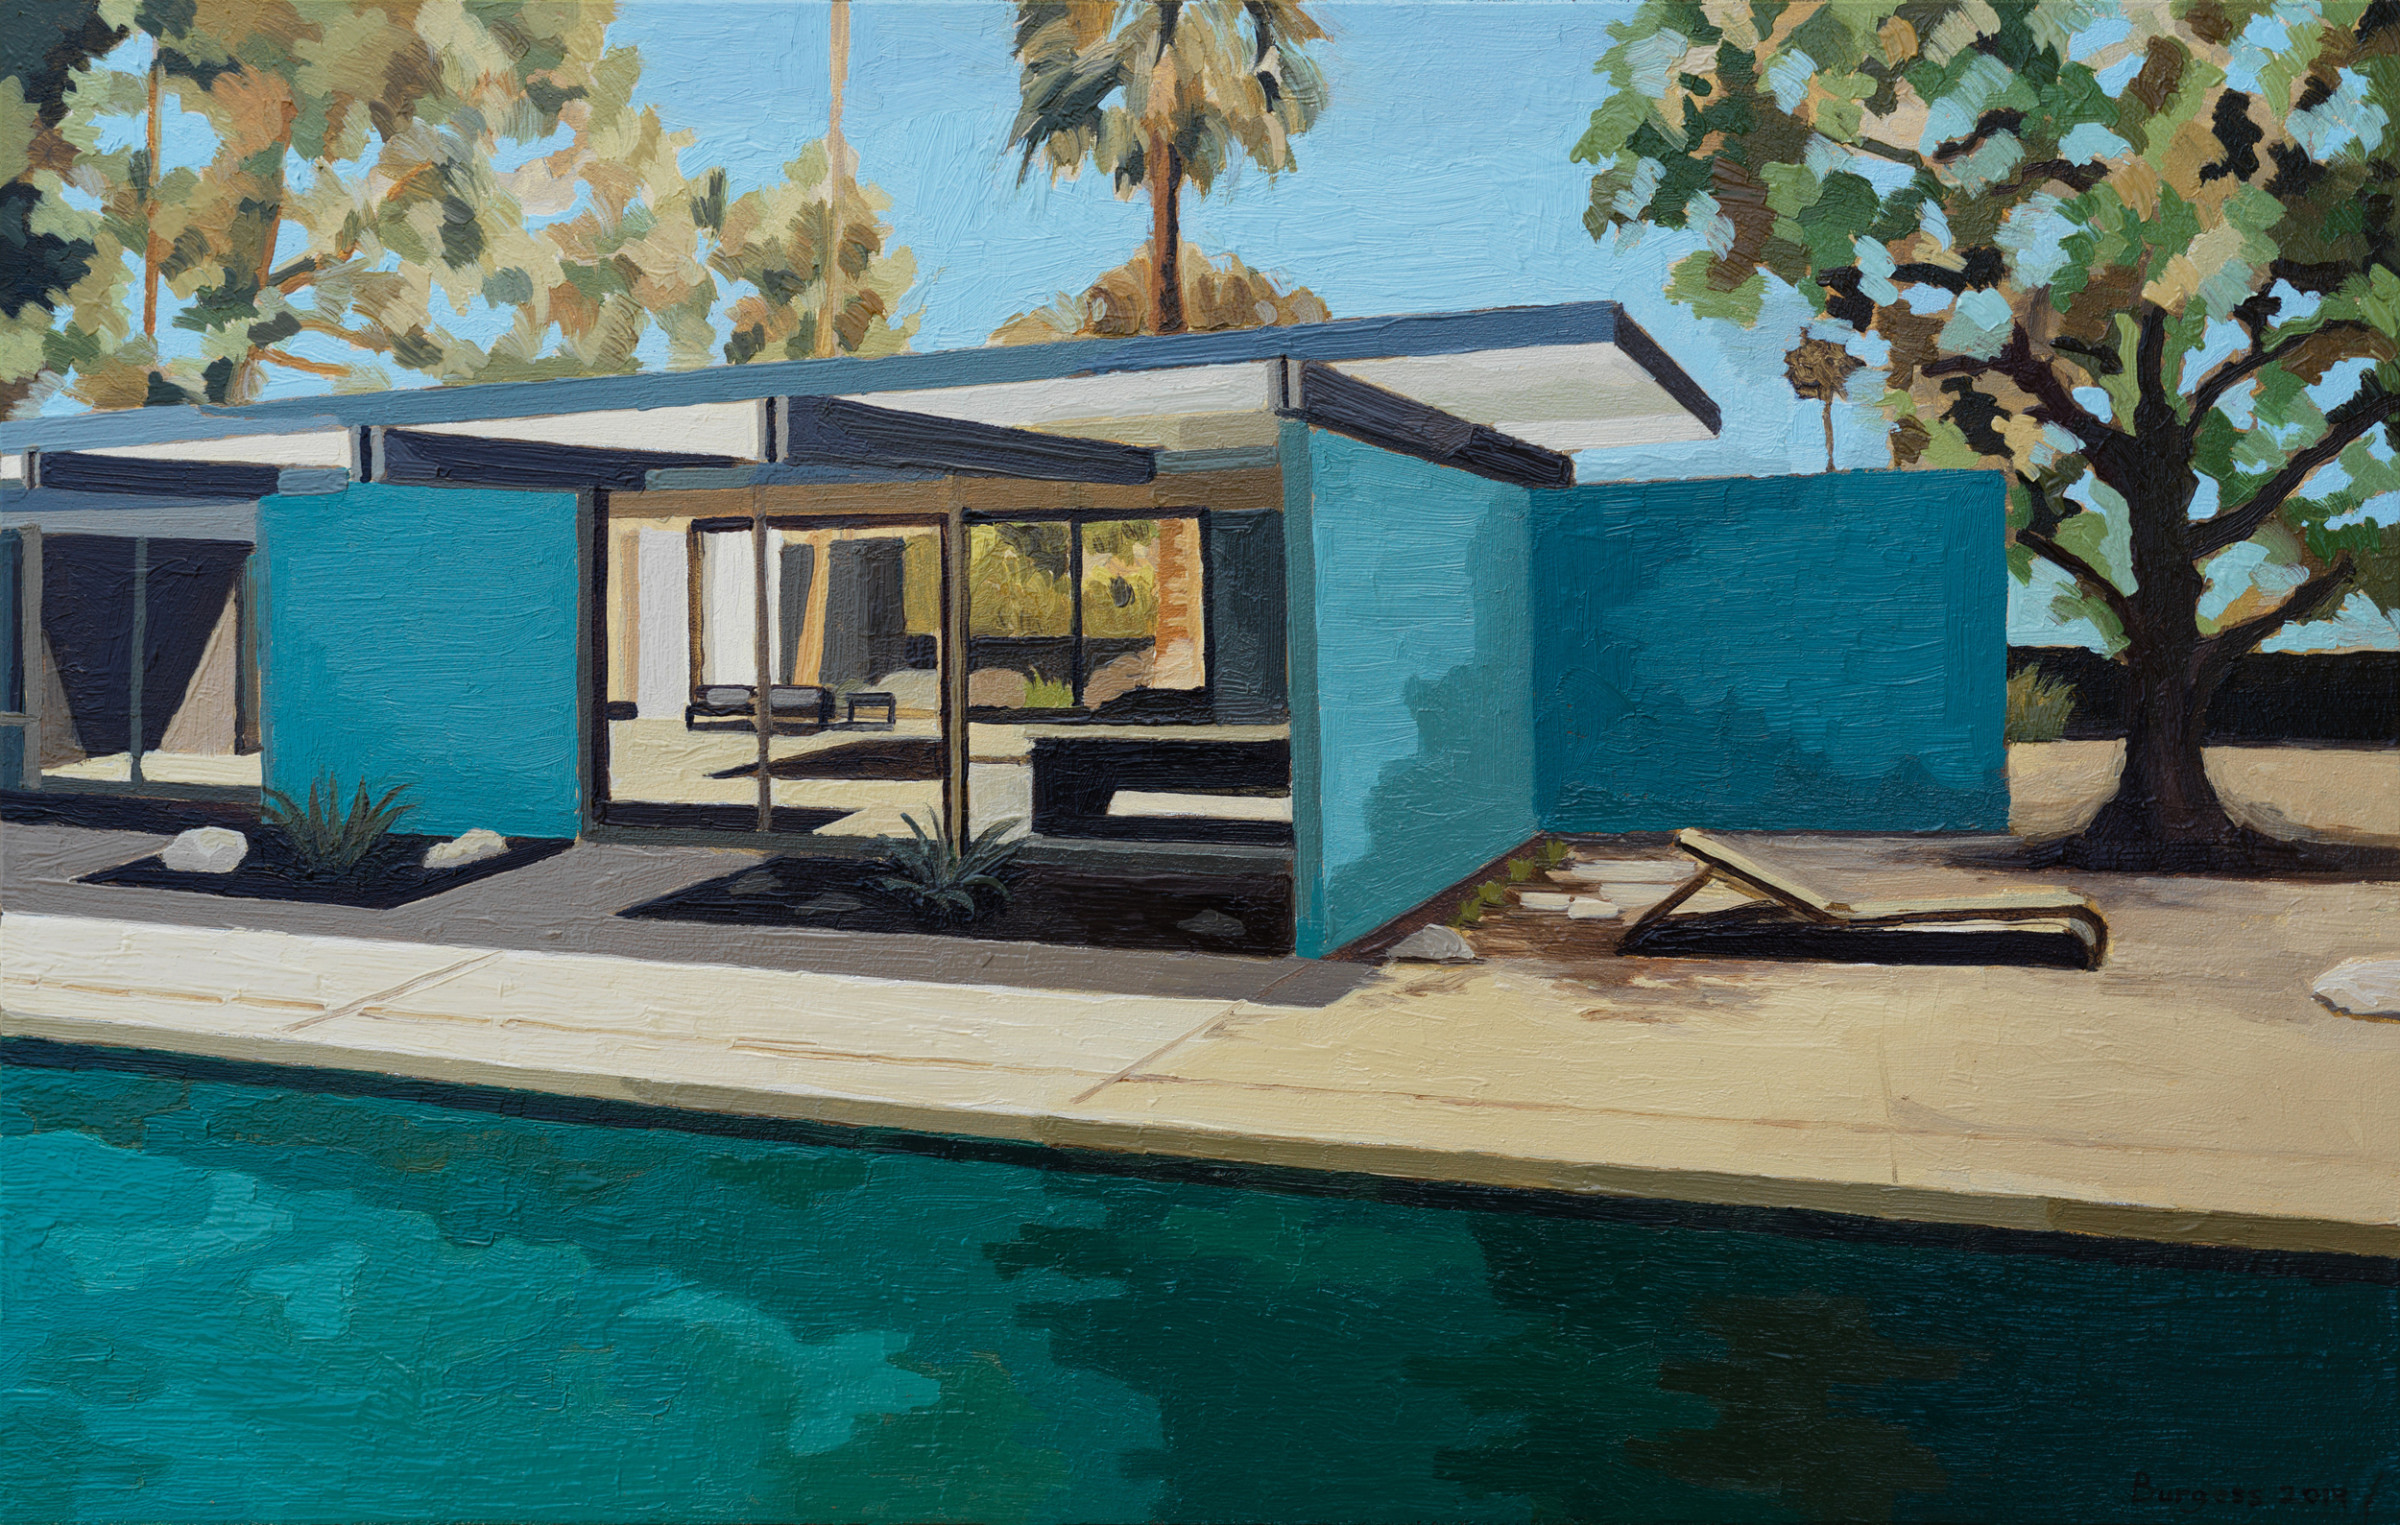 "<span class=""link fancybox-details-link""><a href=""/exhibitions/46/works/artworks2776/"">View Detail Page</a></span><div class=""artist""><strong>Andy Burgess</strong></div><div class=""title""><em>Wexler Family Home, Blue Walls</em>, 2019</div><div class=""signed_and_dated"">Signed, dated recto</div><div class=""medium"">Oil on Panel</div><div class=""dimensions"">17.8 x 27.9 cm<br>7 x 11 in.</div>"